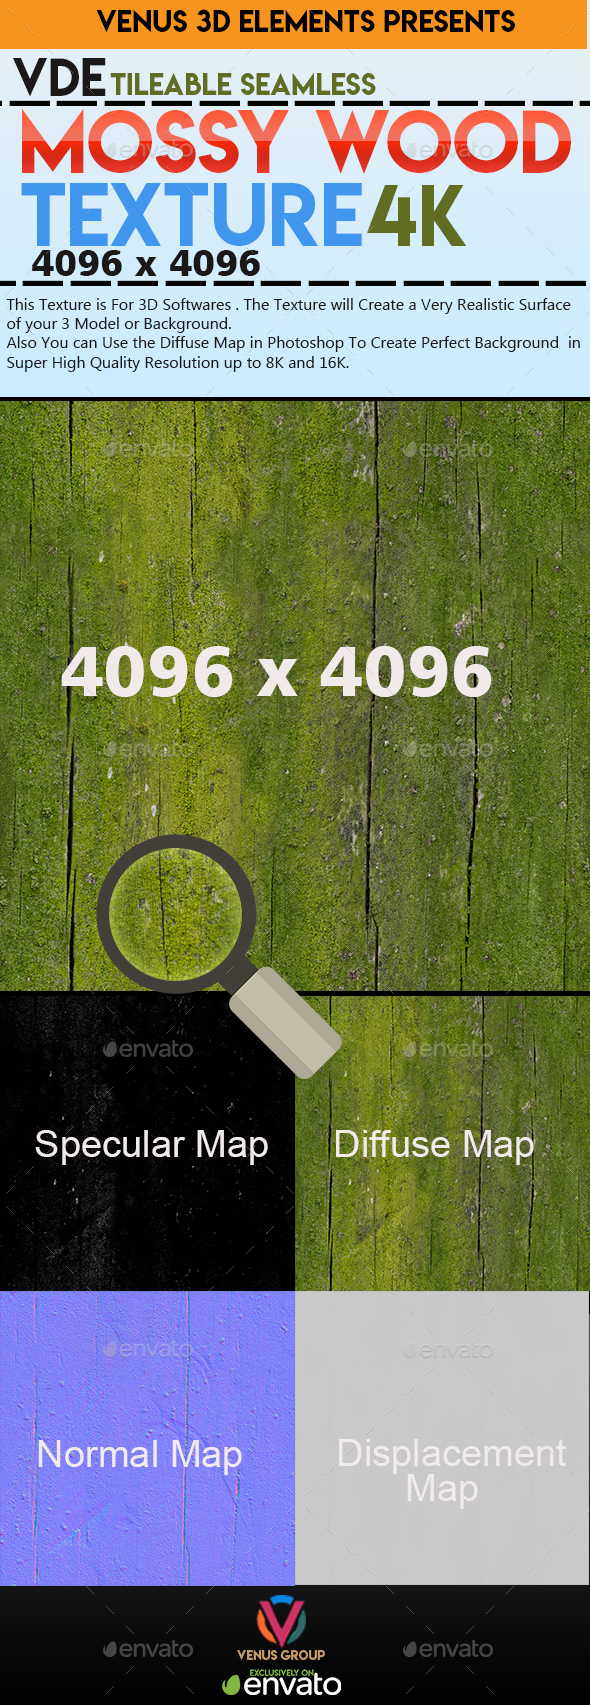 VDE_Mossy_Wood_4K_Texture_Seamless&Tileable - 3DOcean Item for Sale